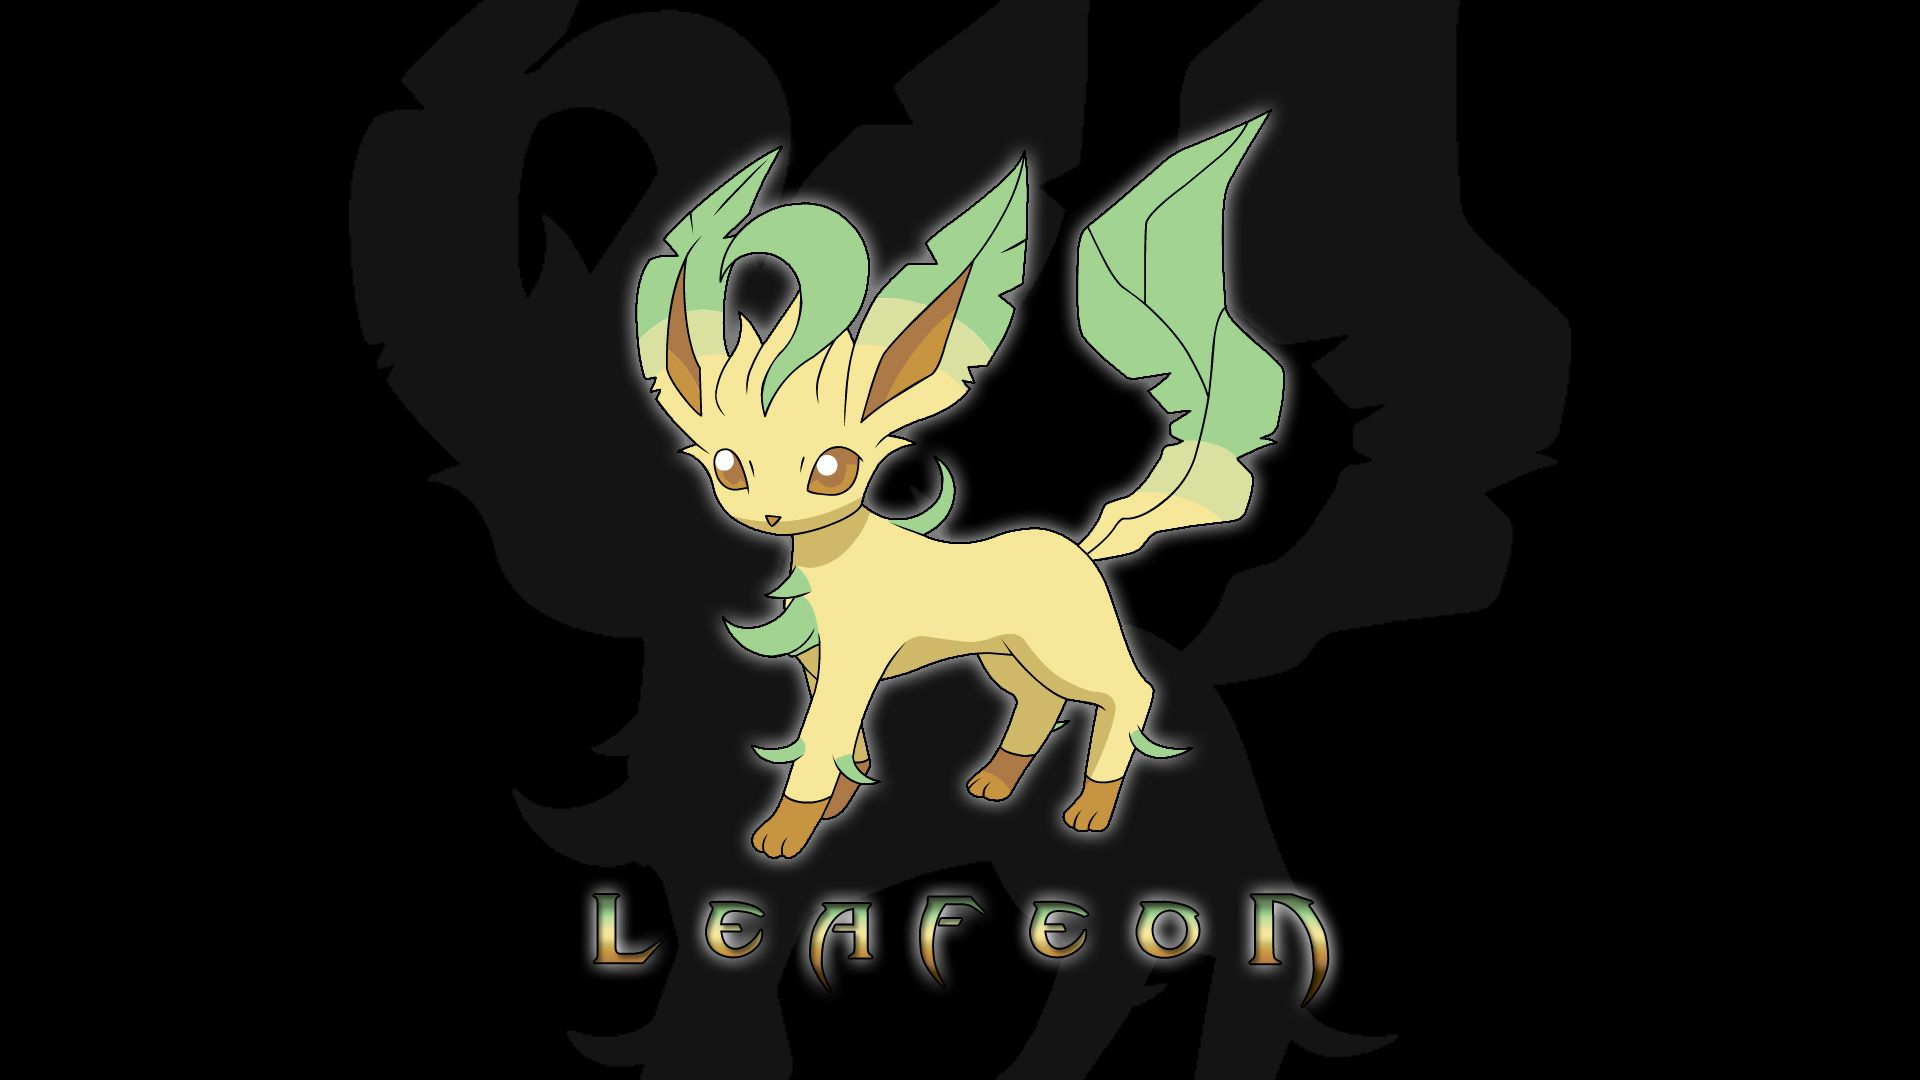 1920x1080 Leafeon Wallpaper 12+ - HD wallpaper Collections - szftlgs.com